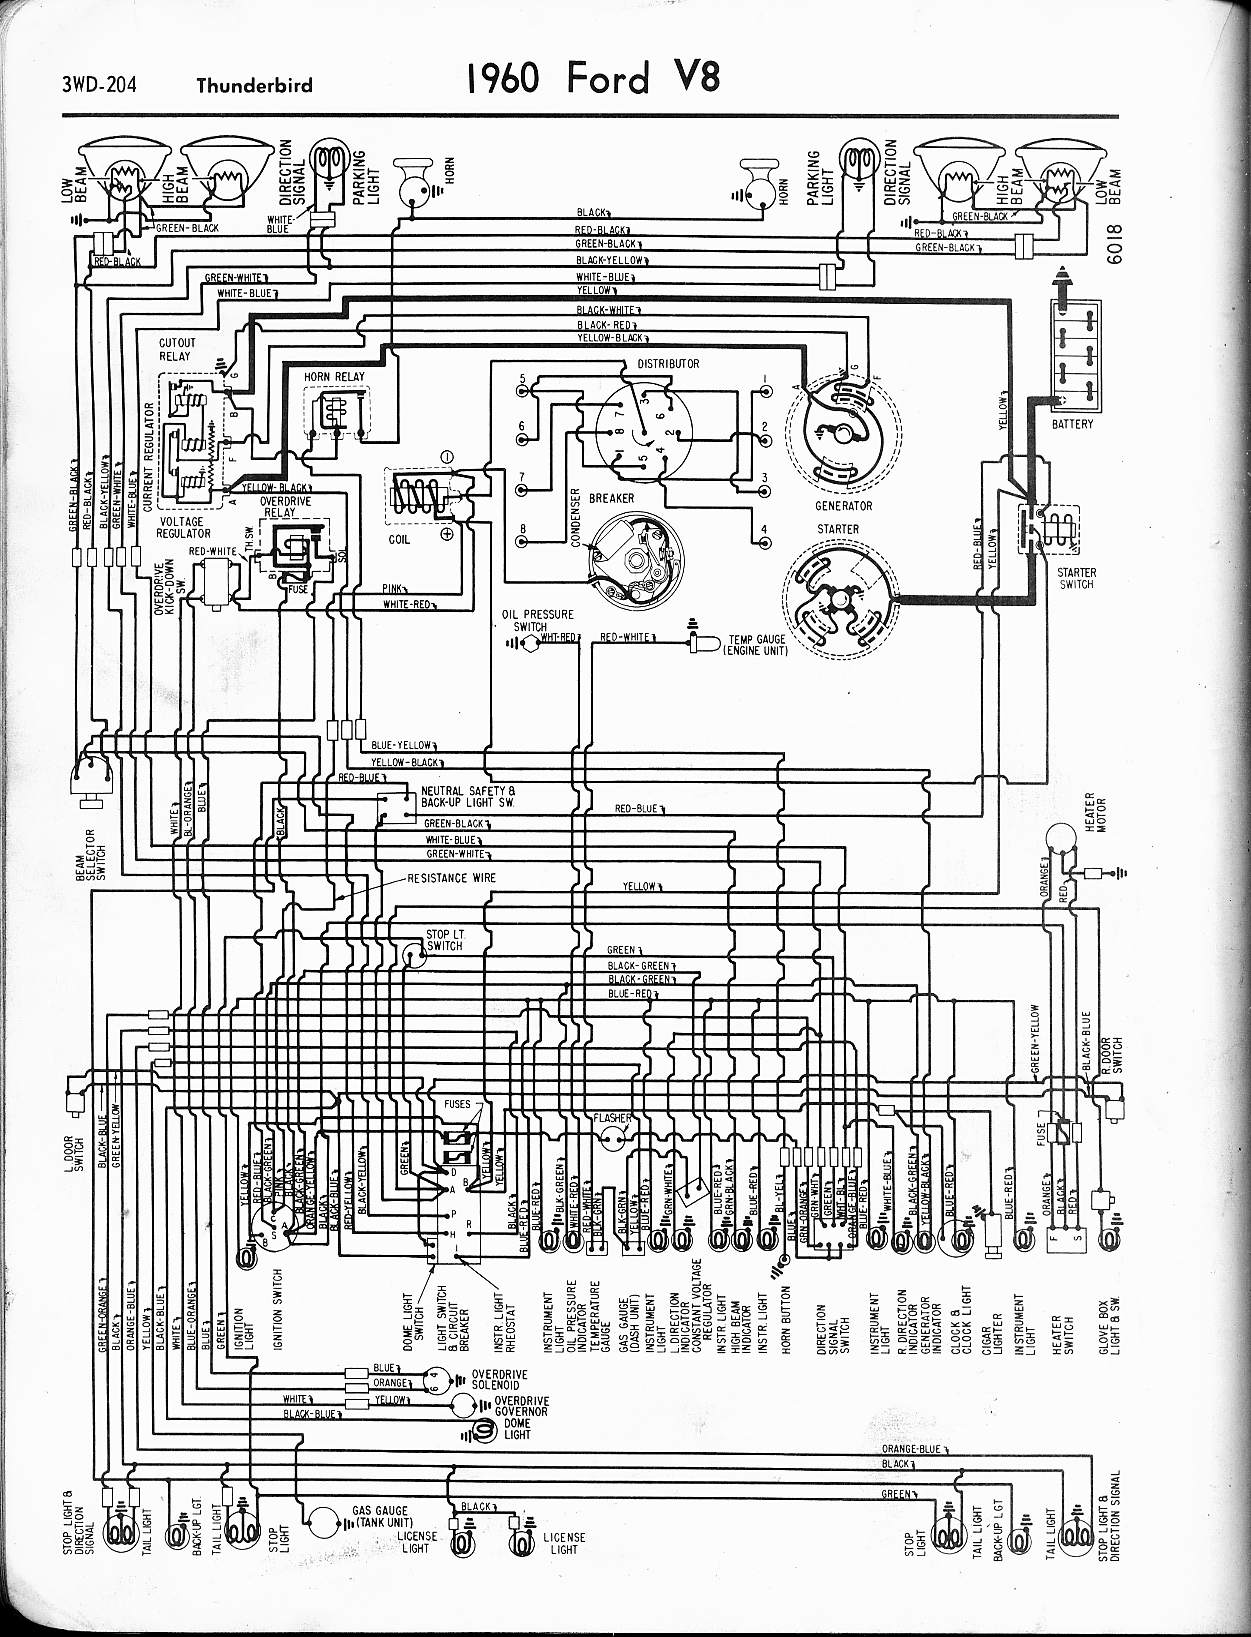 1956 thunderbird wiring diagram pdf 57-65 ford wiring diagrams